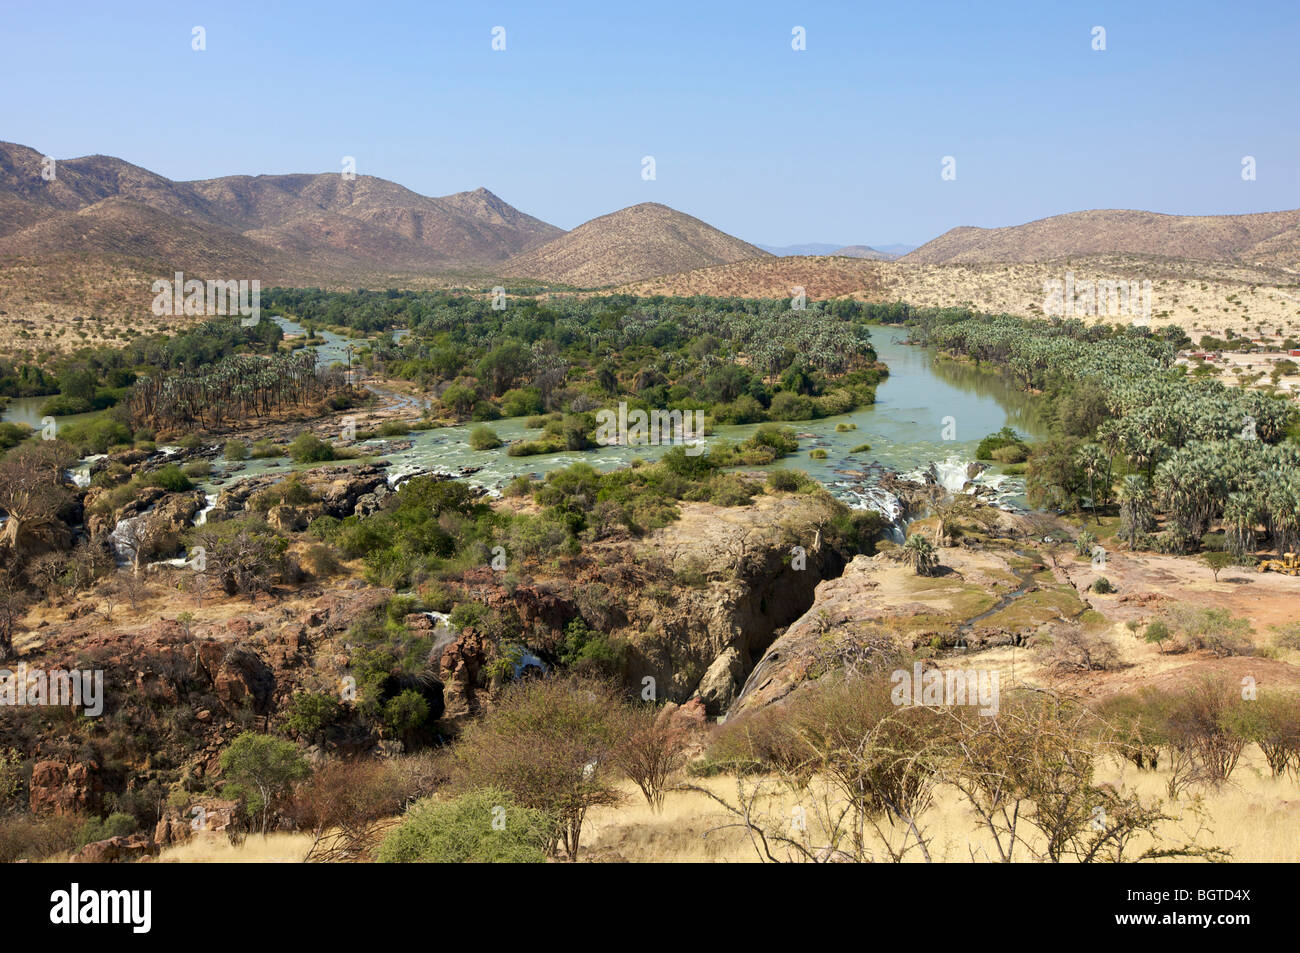 Distant view of Epupa Falls and surrounding area, Kunene River, Kaokoland, Namibia - Stock Image